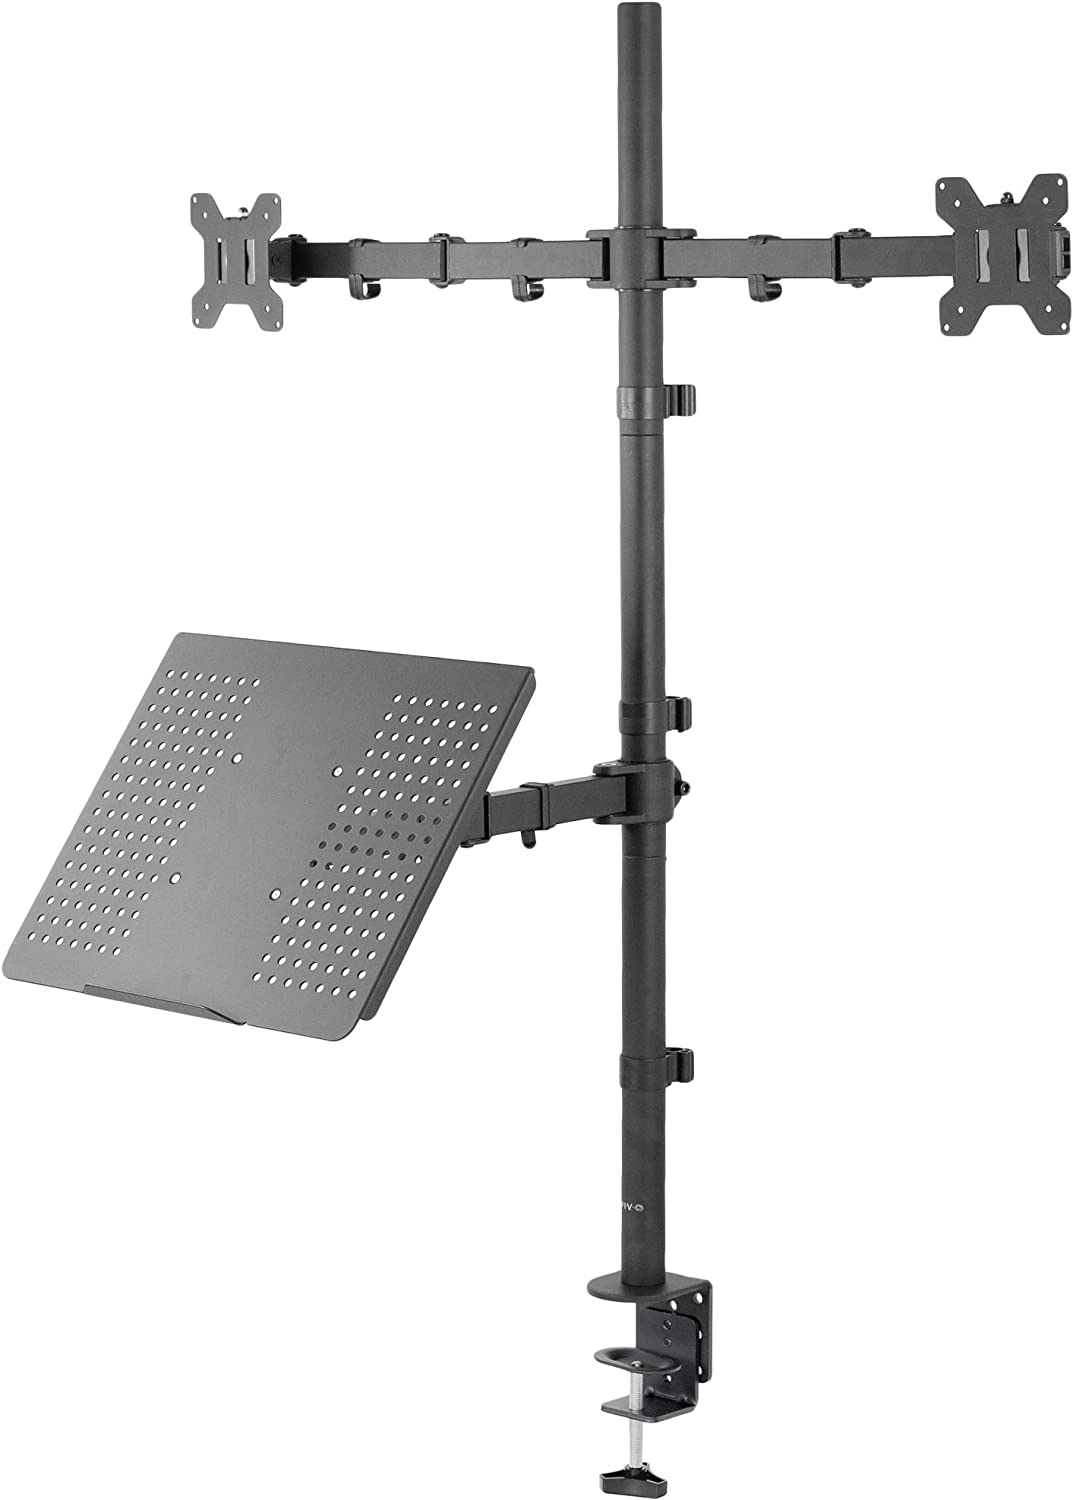 VIVO Laptop and Dual 13 to 27 inch LCD Monitor Stand up Desk Mount, Extra Tall Adjustable Stand, Fits Laptops up to 17 inches, Black (STAND-V012L)